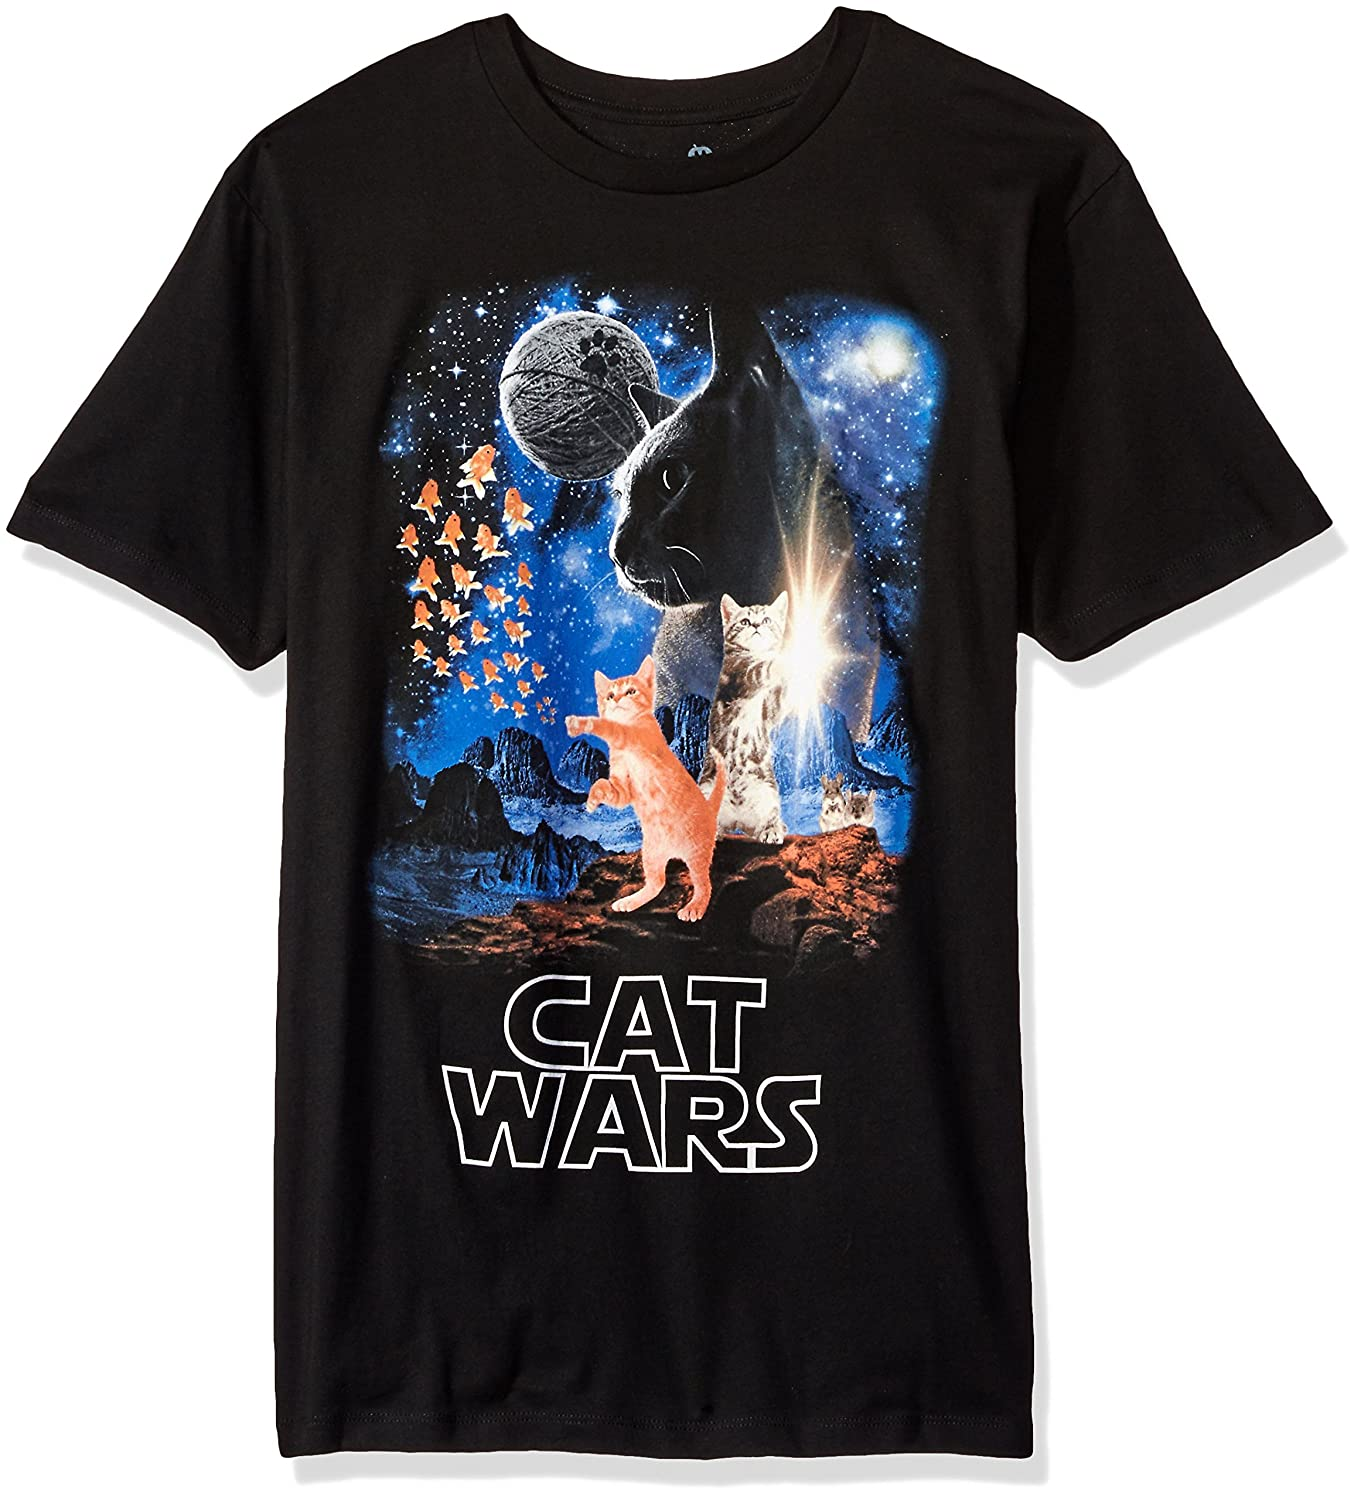 990ebb89 Amazon.com: Goodie Two Sleeves Men's Humor Cat Wars Type Adult T-Shirt:  Clothing